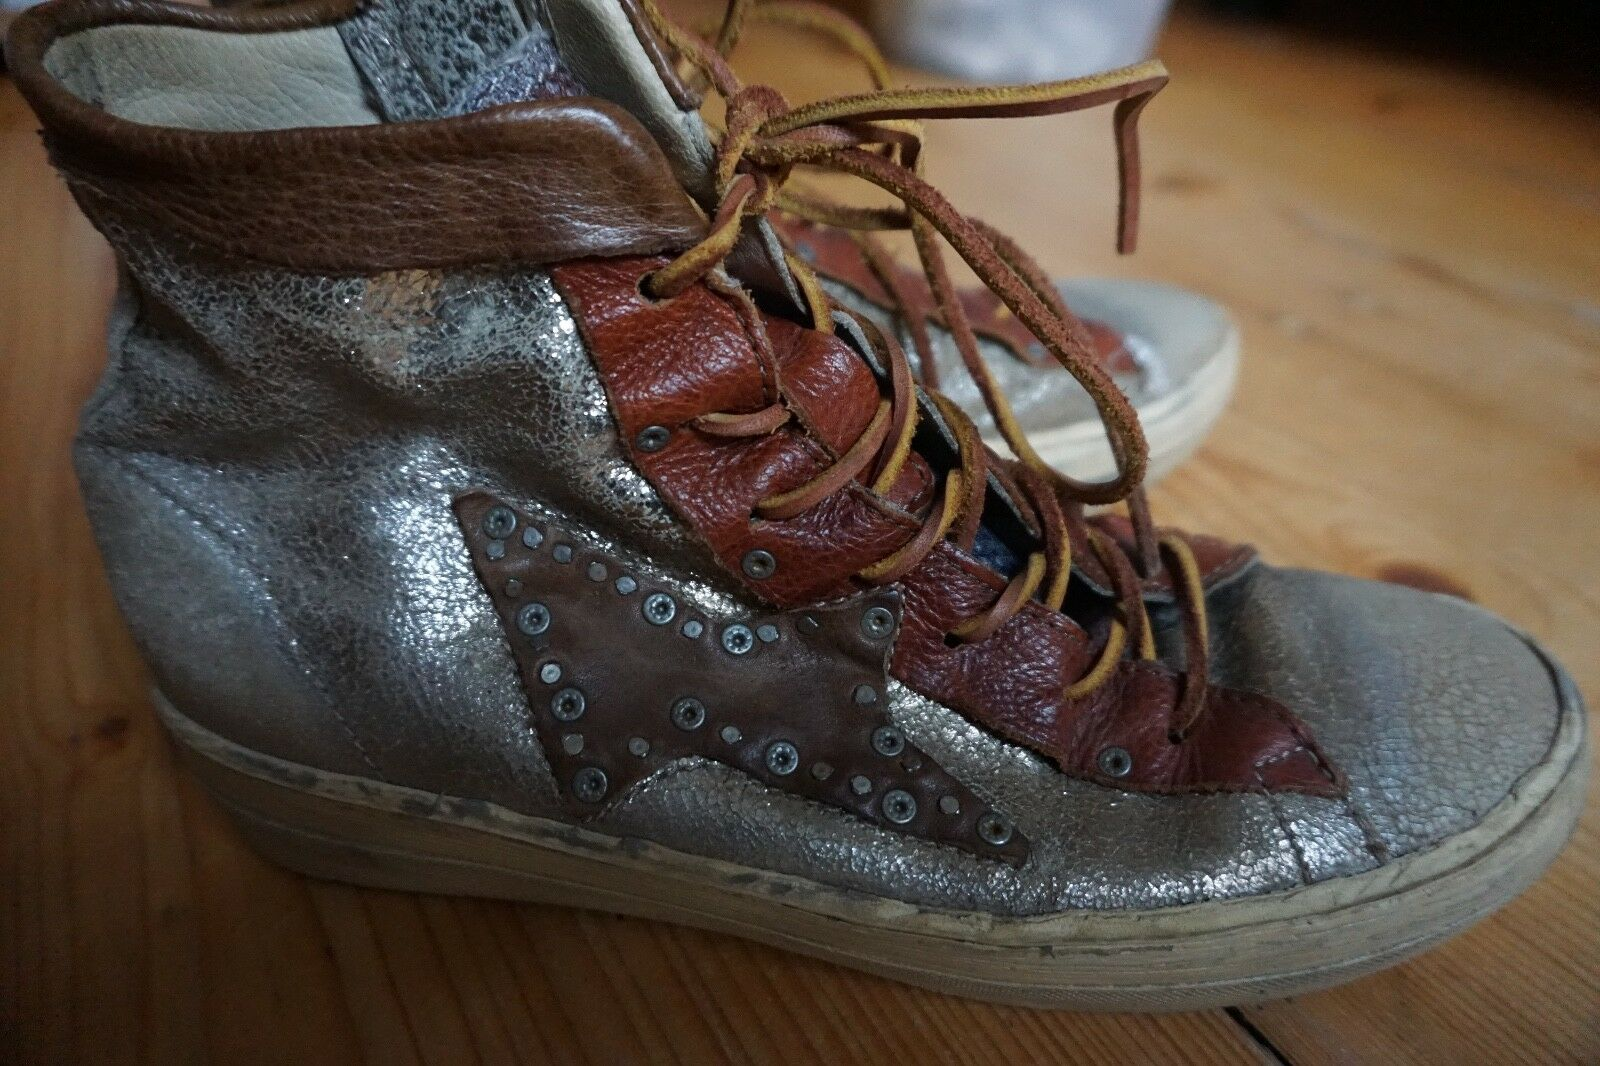 Airstep A.S.98 - DIXON - Sneaker high - A.S.98 bronzo/cotto 762d0d